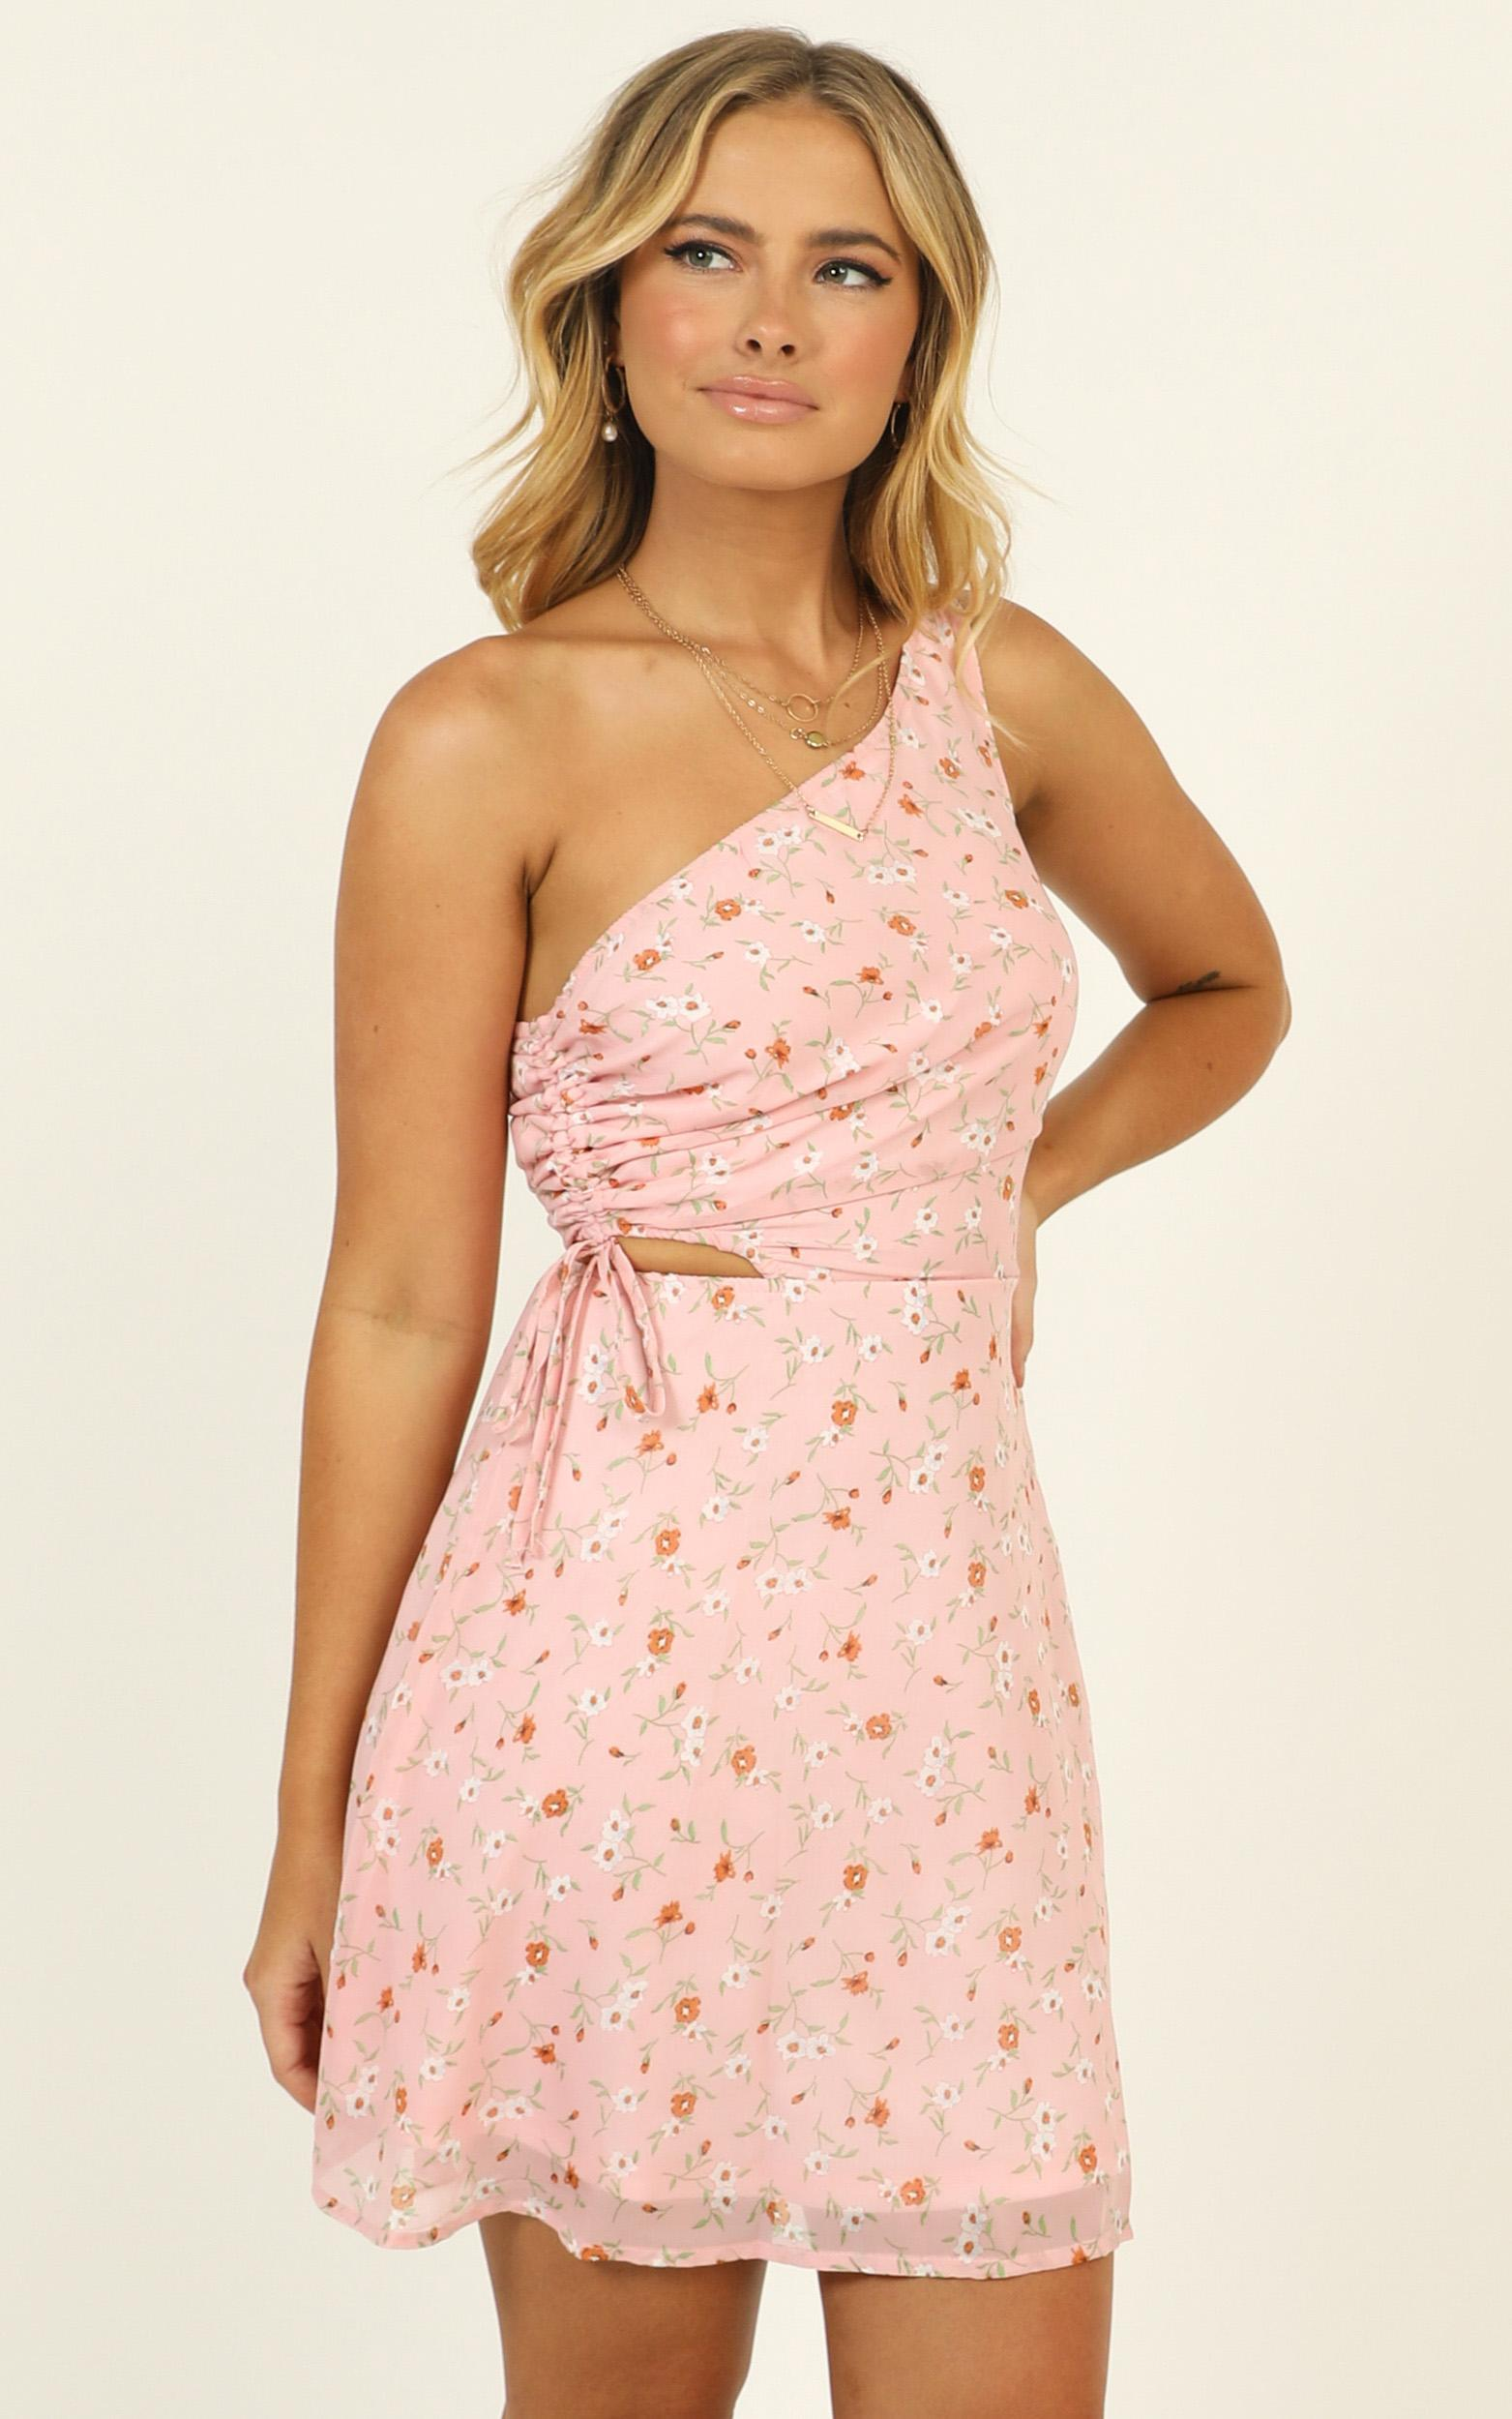 To Be Mine dress in pink floral - 16 (XXL), Pink, hi-res image number null